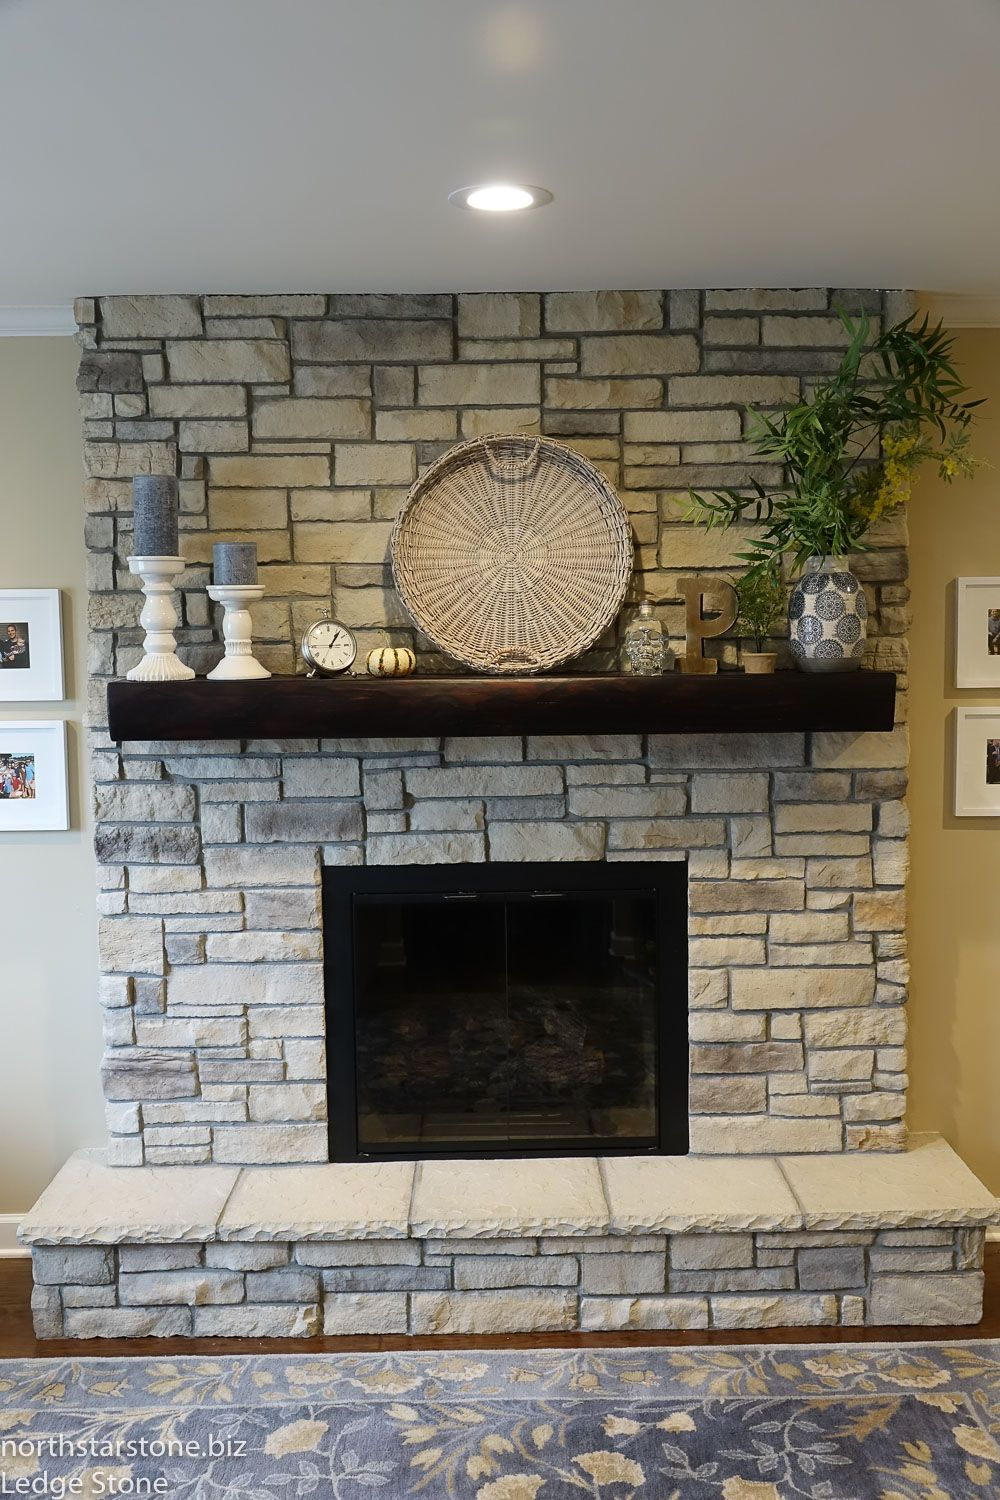 Ledge Stone Was Installed A Half Height Brick Fireplace We